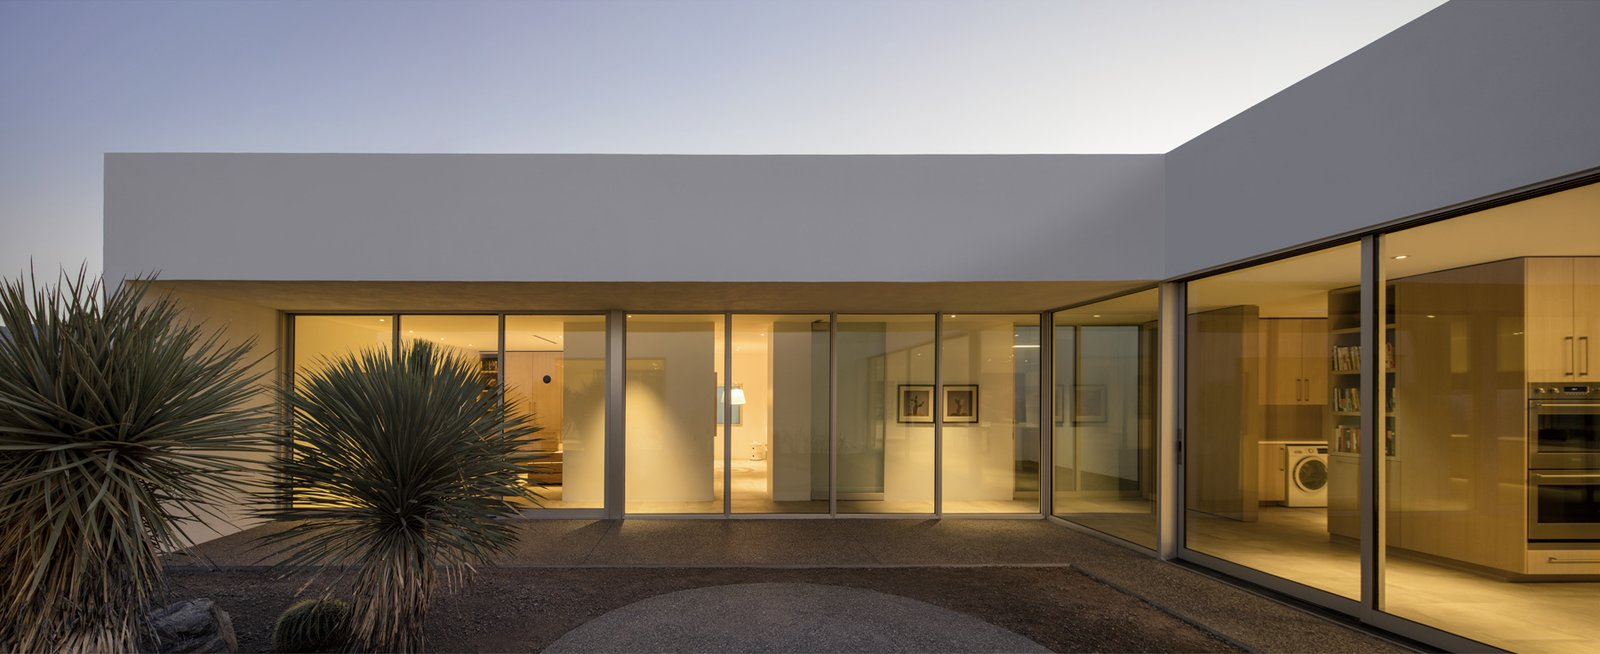 Tucsonu0027s Courtyard House by HK Associates features giant floor-to-ceiling fixed & Photo 2 of 6 in How to Pick the Most Energy-Efficient Windows and ... pezcame.com